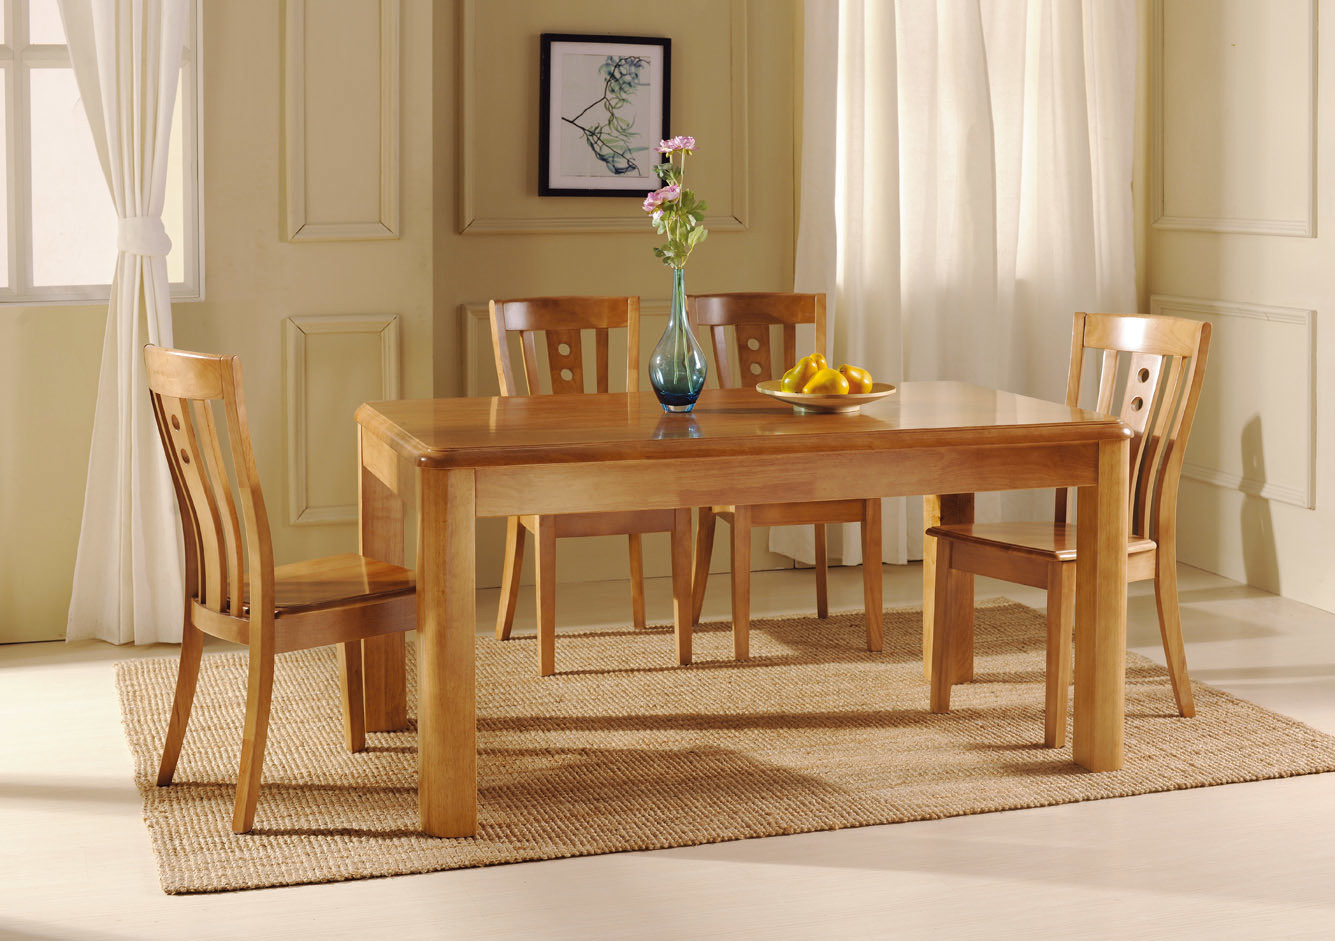 Amazing Dining Room Table 1335 x 941 · 253 kB · jpeg